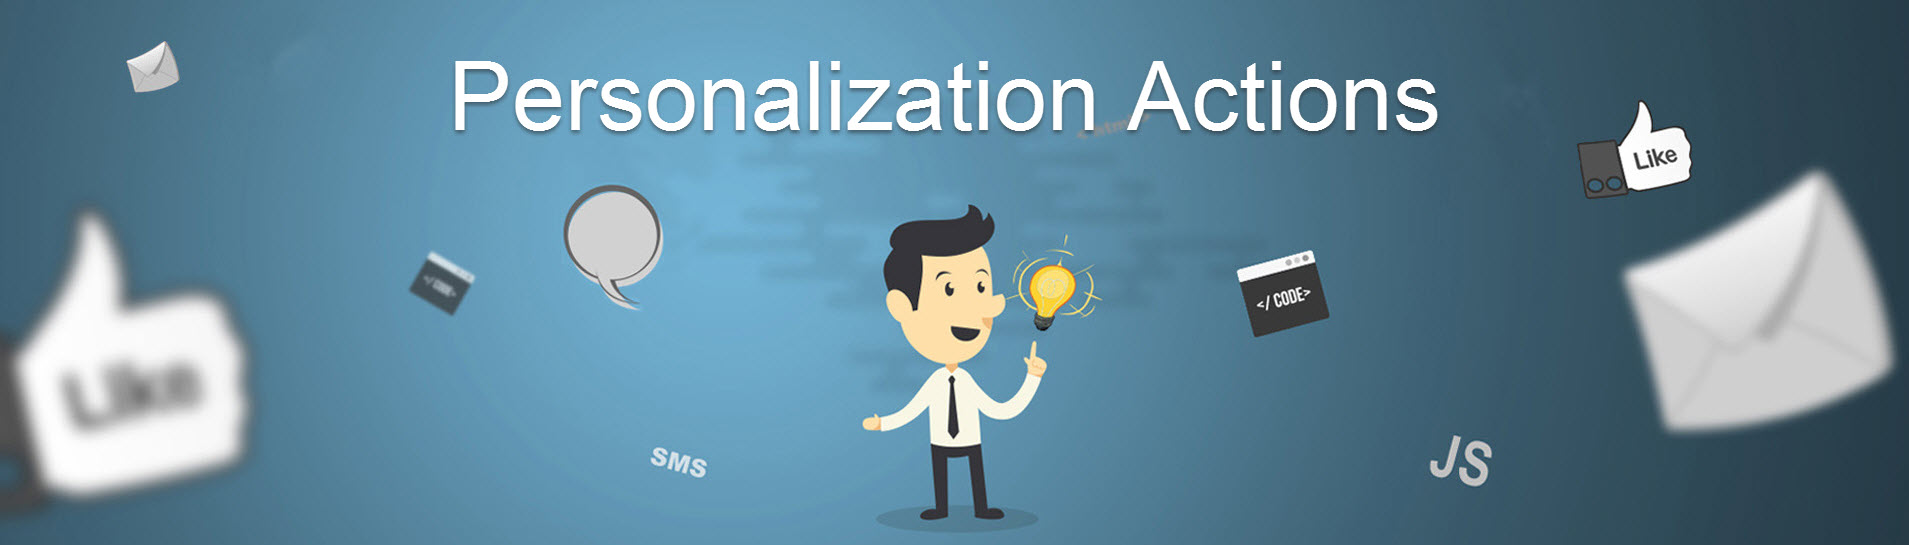 Personalization Actions Cover Image